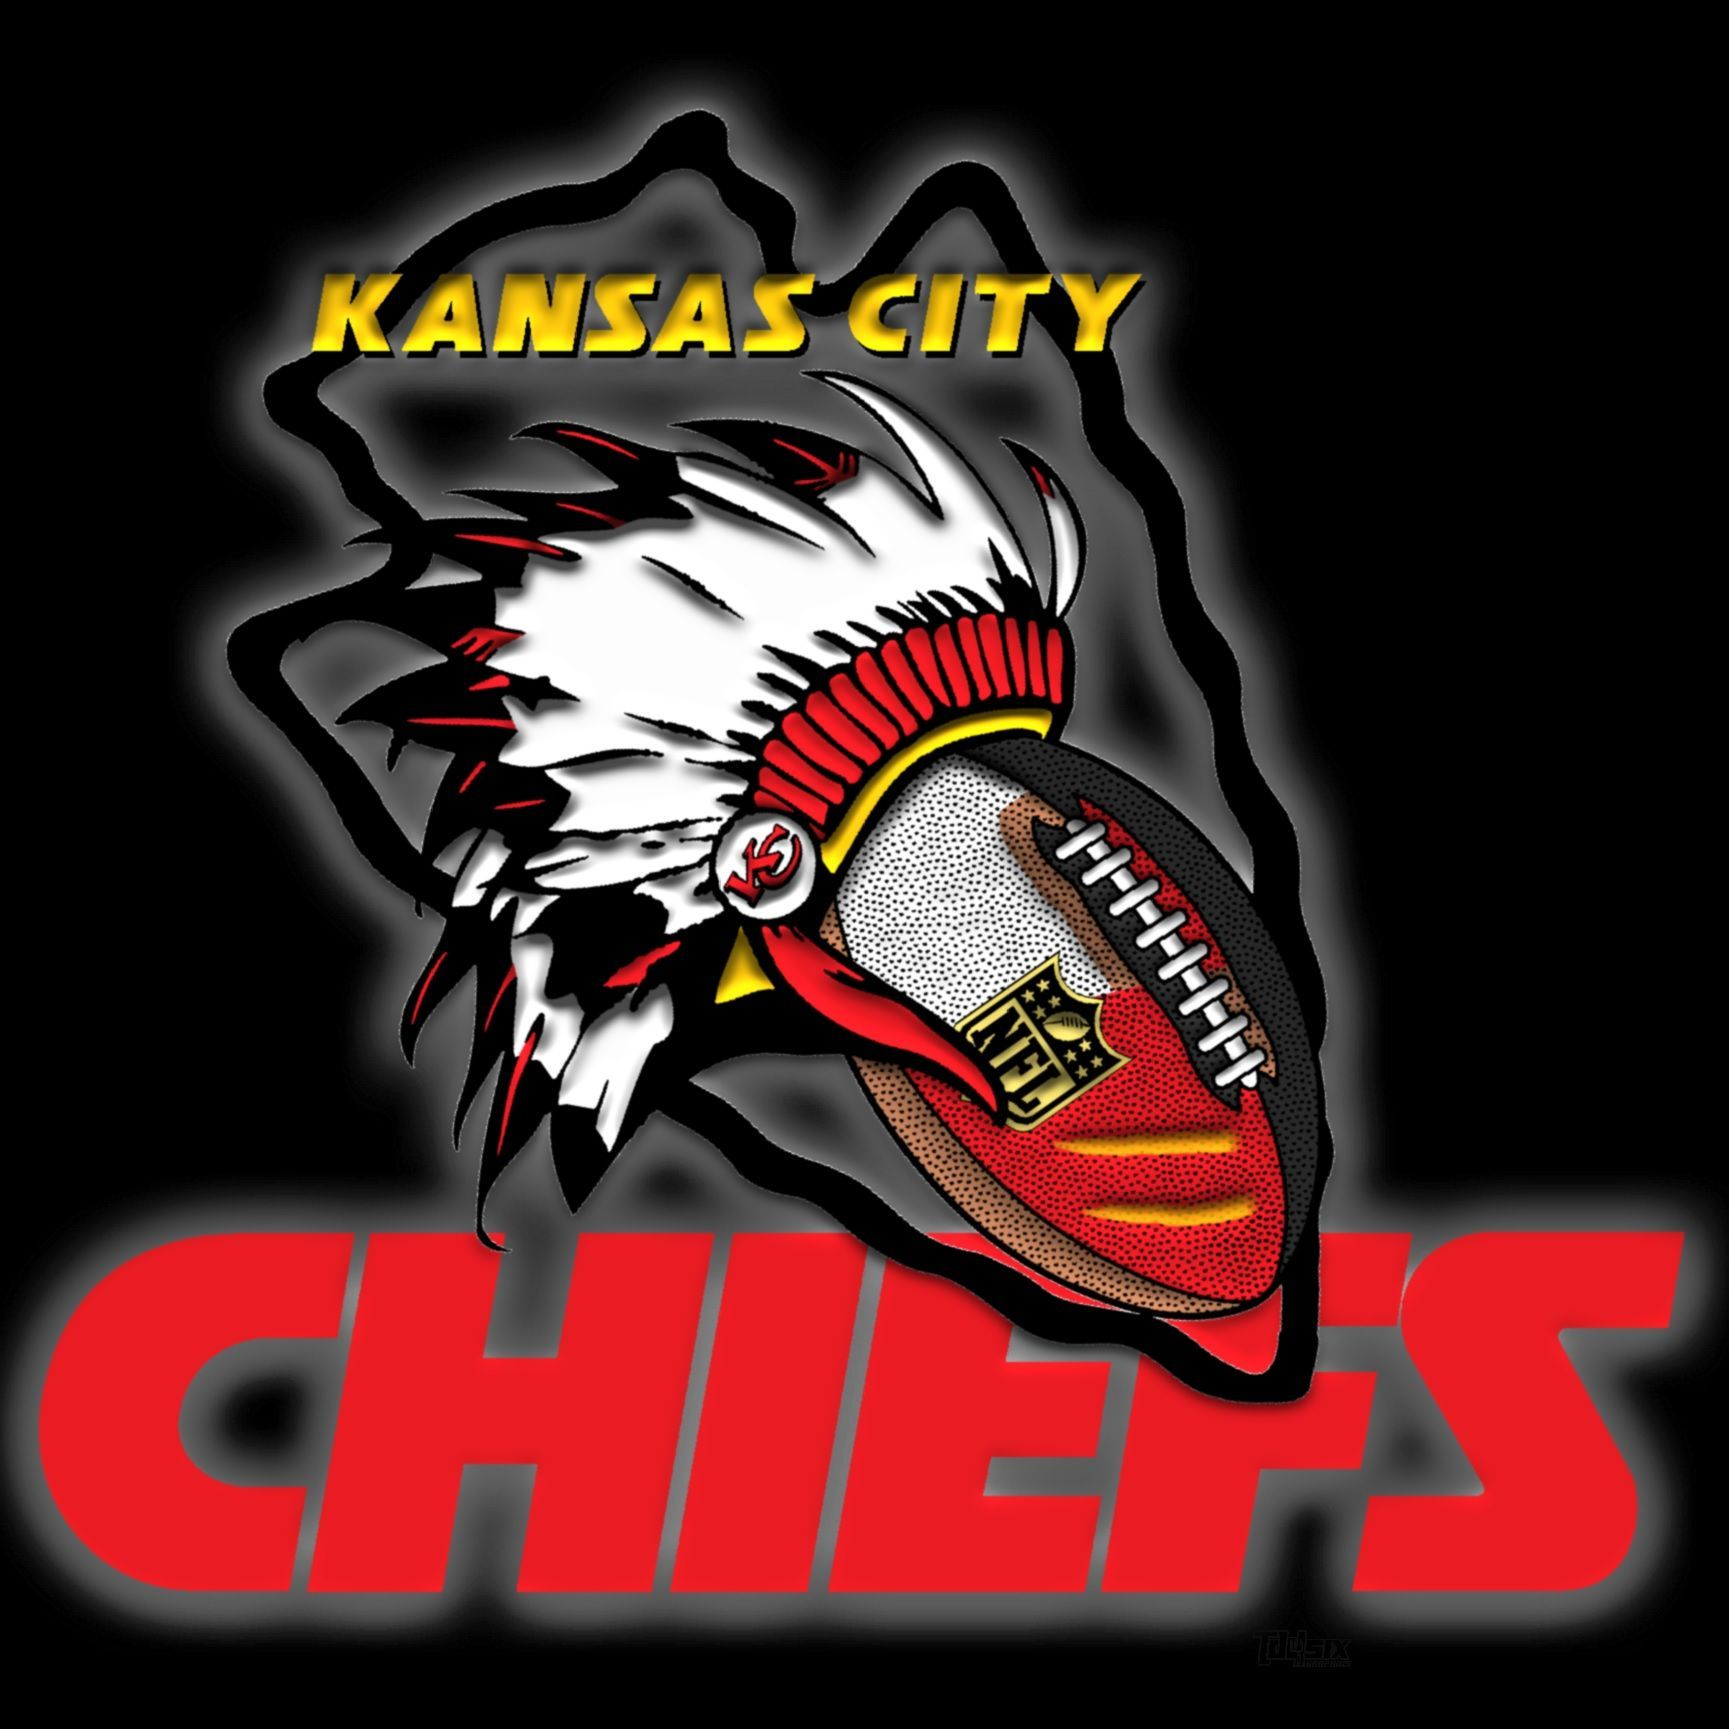 Pin By Dark Knight On Chiefs In 2020 Kansas City Chiefs Logo Kansas City Chiefs Chiefs Logo